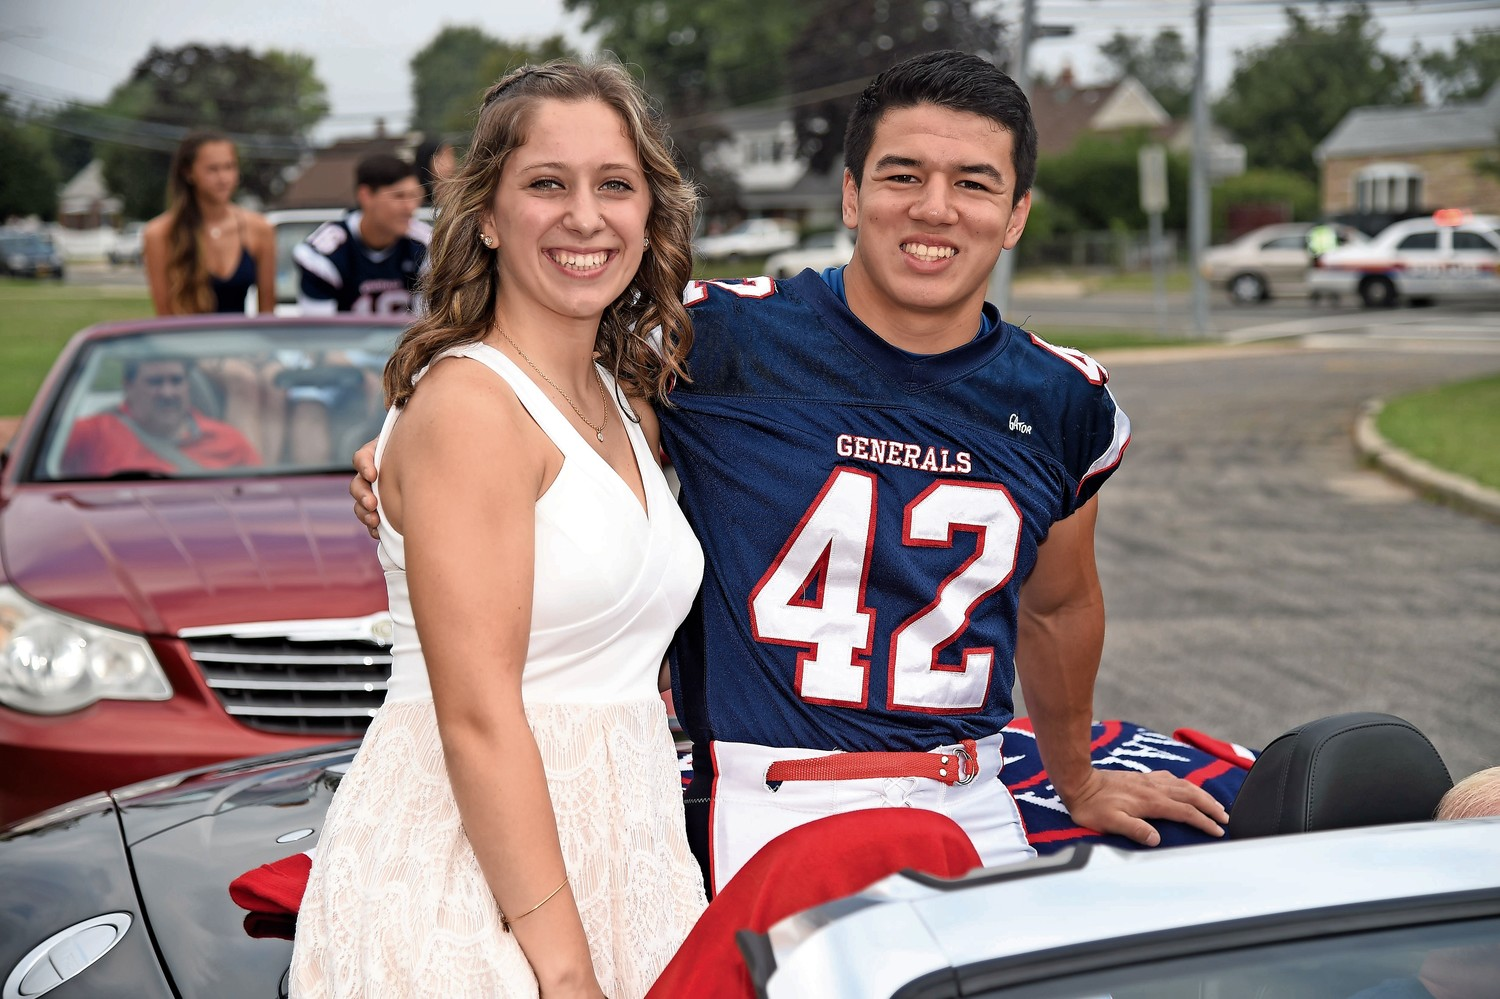 Members of the Homecoming Court sat in their own cars during the parade.